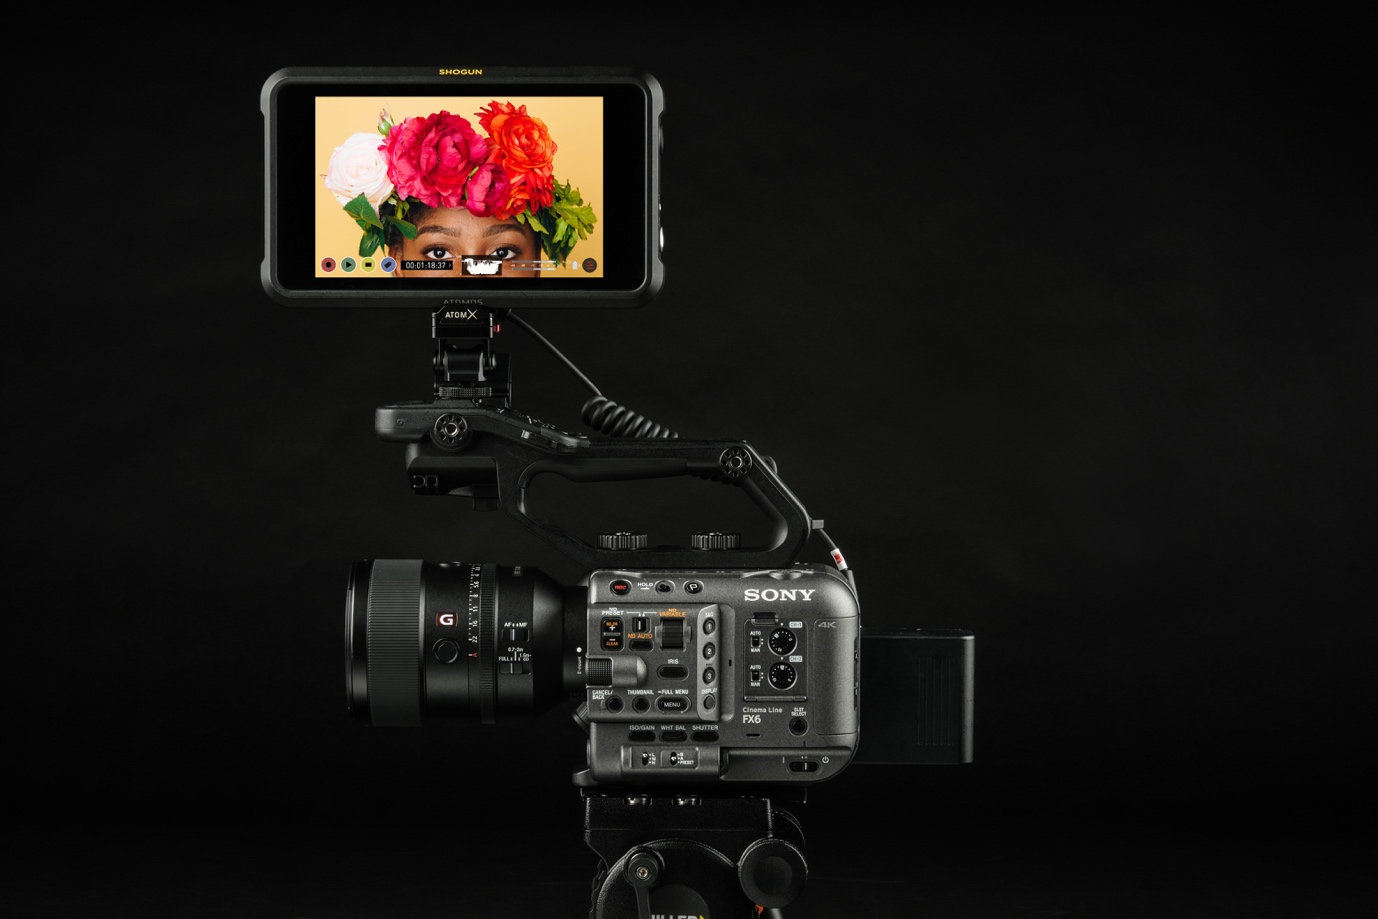 Atomos Shogun 7 update enables DCI 4Kp60 ProRes RAW capture with Sony FX6